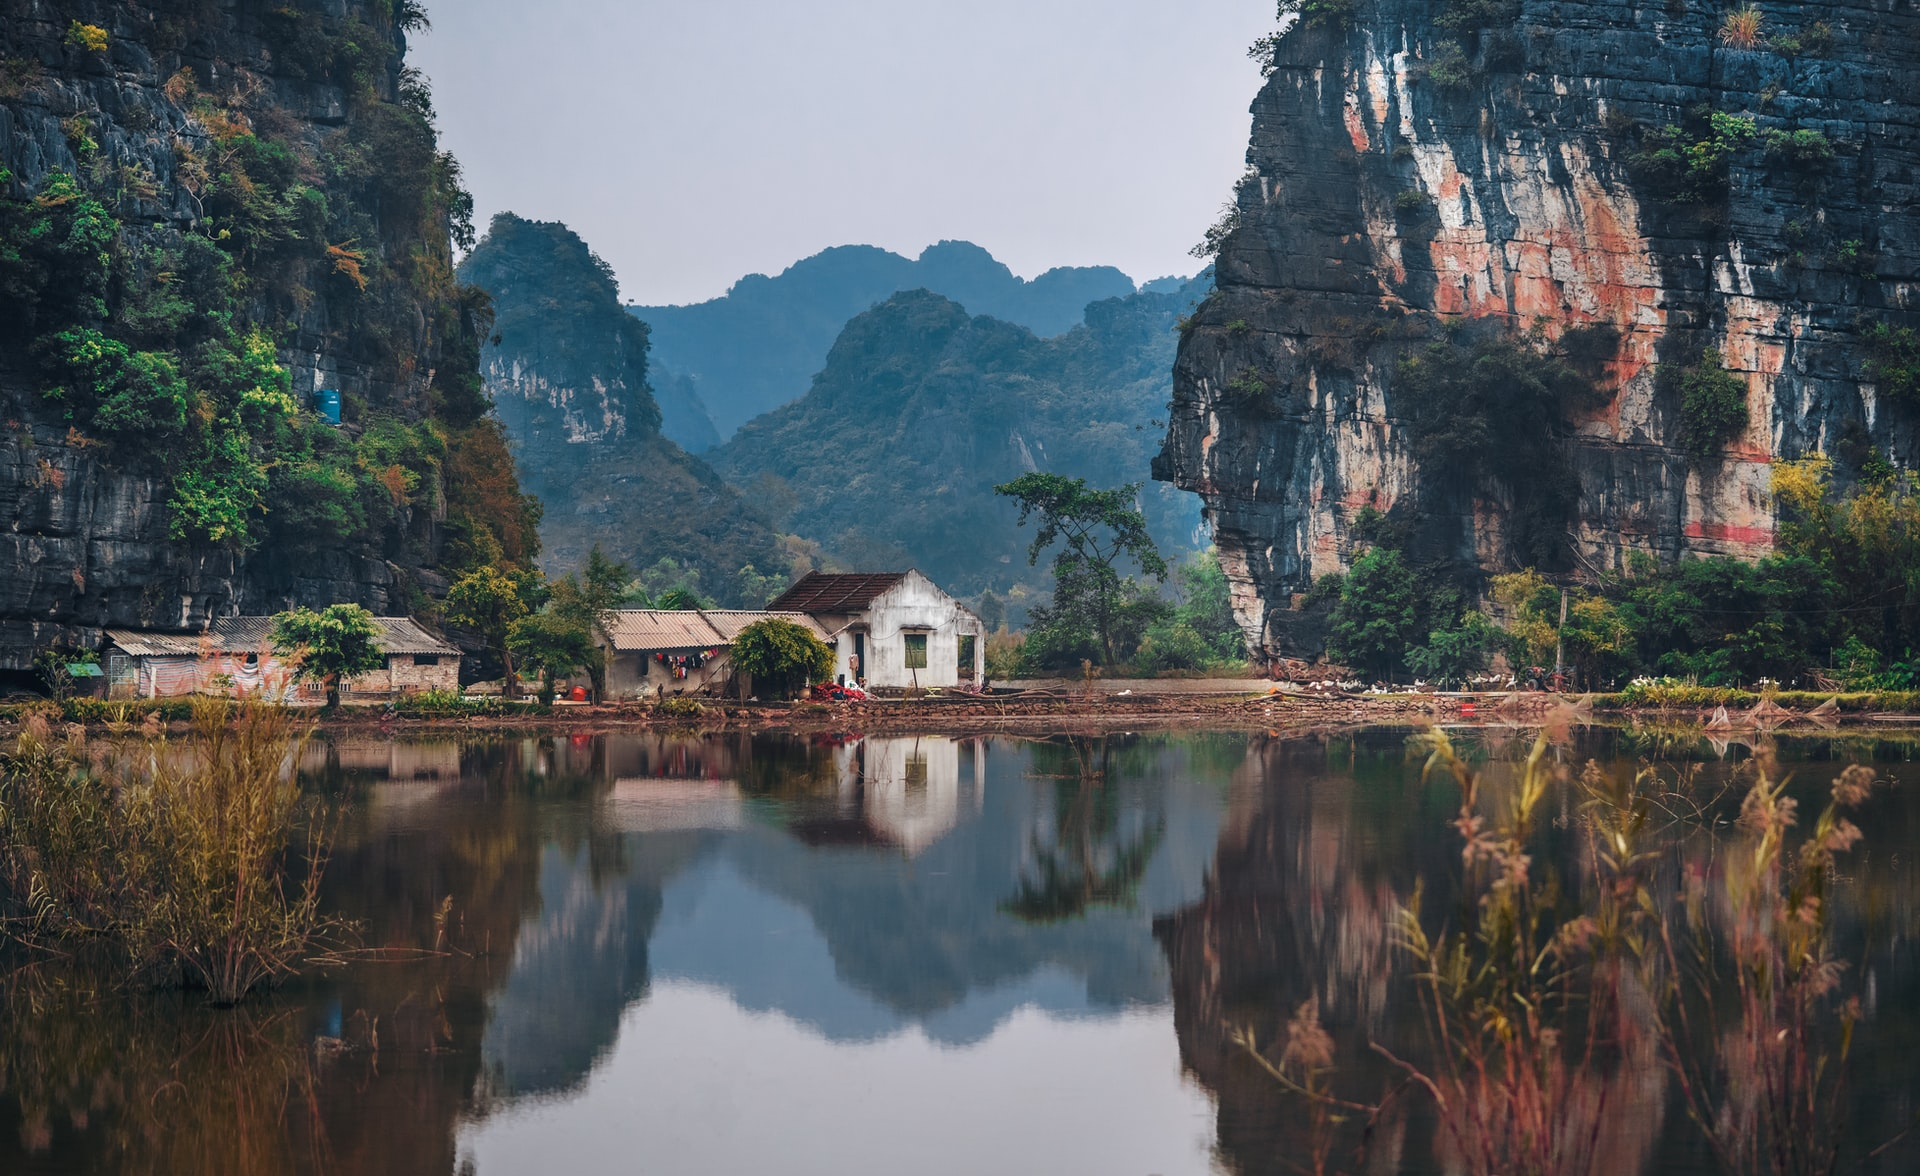 Southeast Asian states like Vietnam could explore the forming of joint ventures to set up subregional PV manufacturing hubs, Zhai said. Image credit: Ruslan Bardash / Unsplash